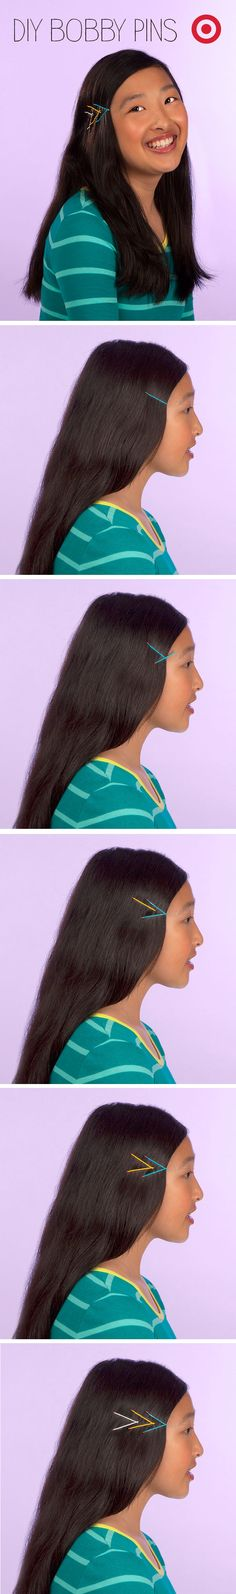 Make some arrows out of bobby pins in your back to school beauty's picture day hair.